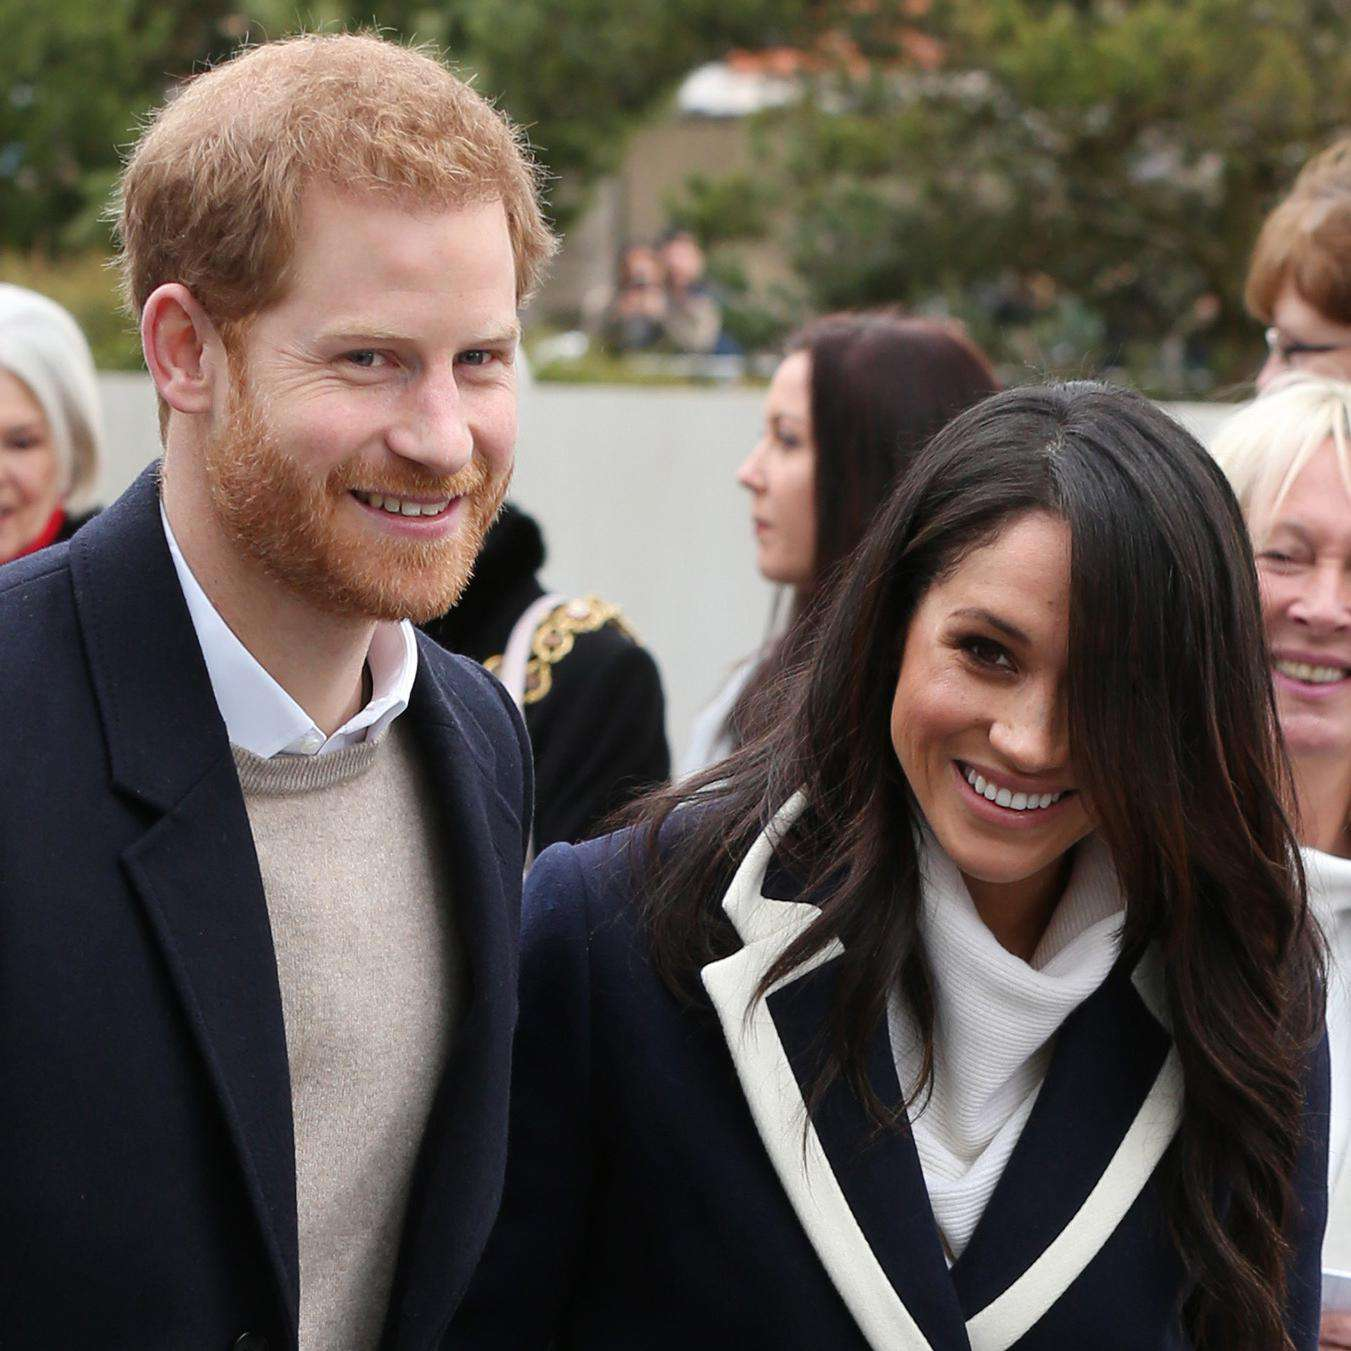 What Prince Harry and Meghan Markle's Future Might Hold